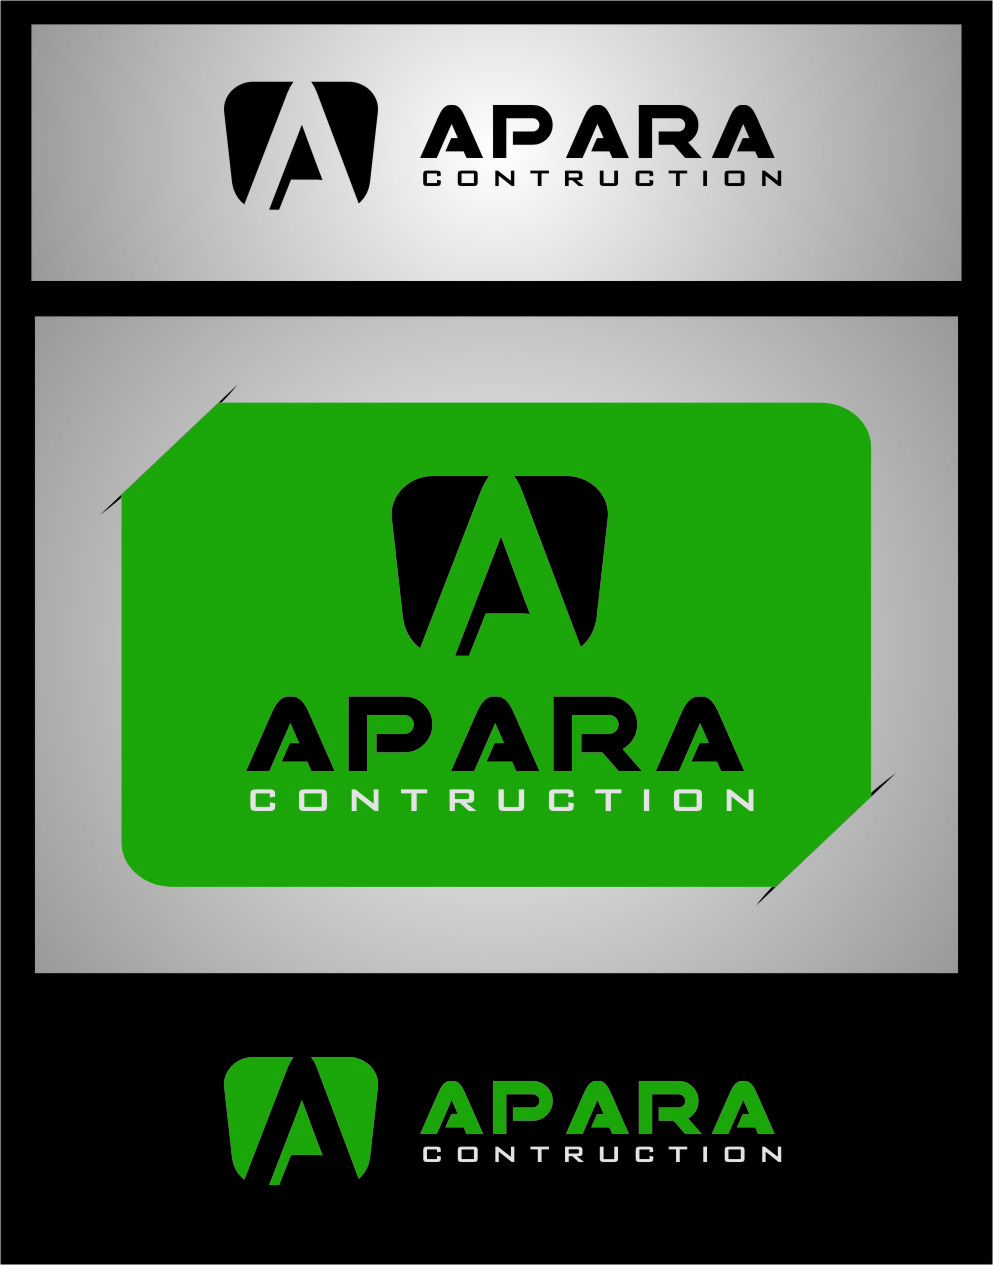 Logo Design by Ngepet_art - Entry No. 189 in the Logo Design Contest Apara Construction Logo Design.